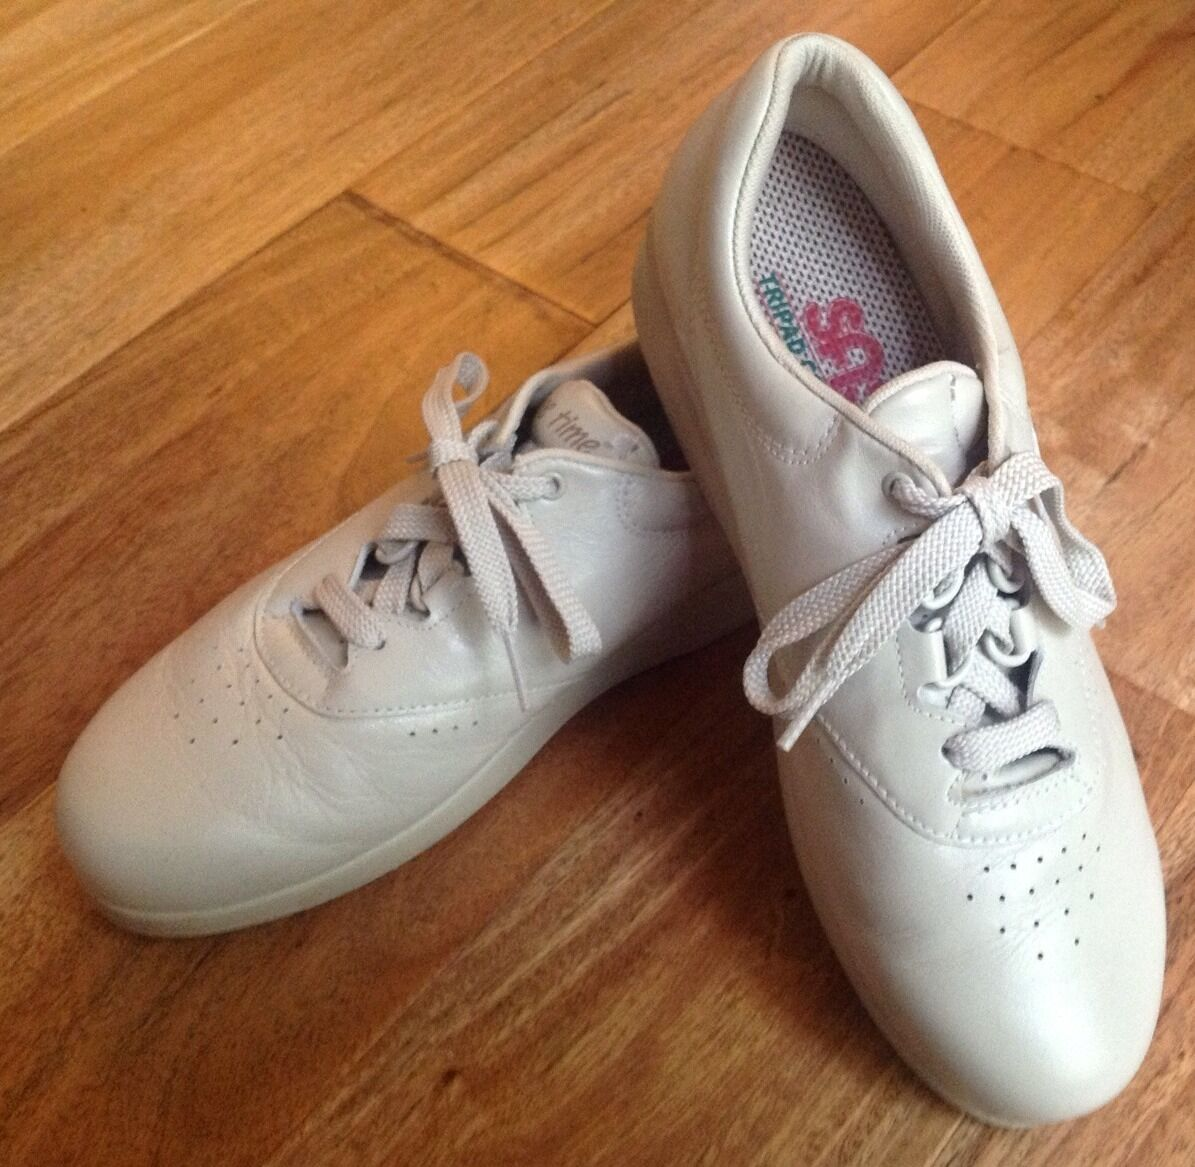 SAS Freetime Beige 7 M Leather Oxford Diabetic Walking shoes Comfort Support USA